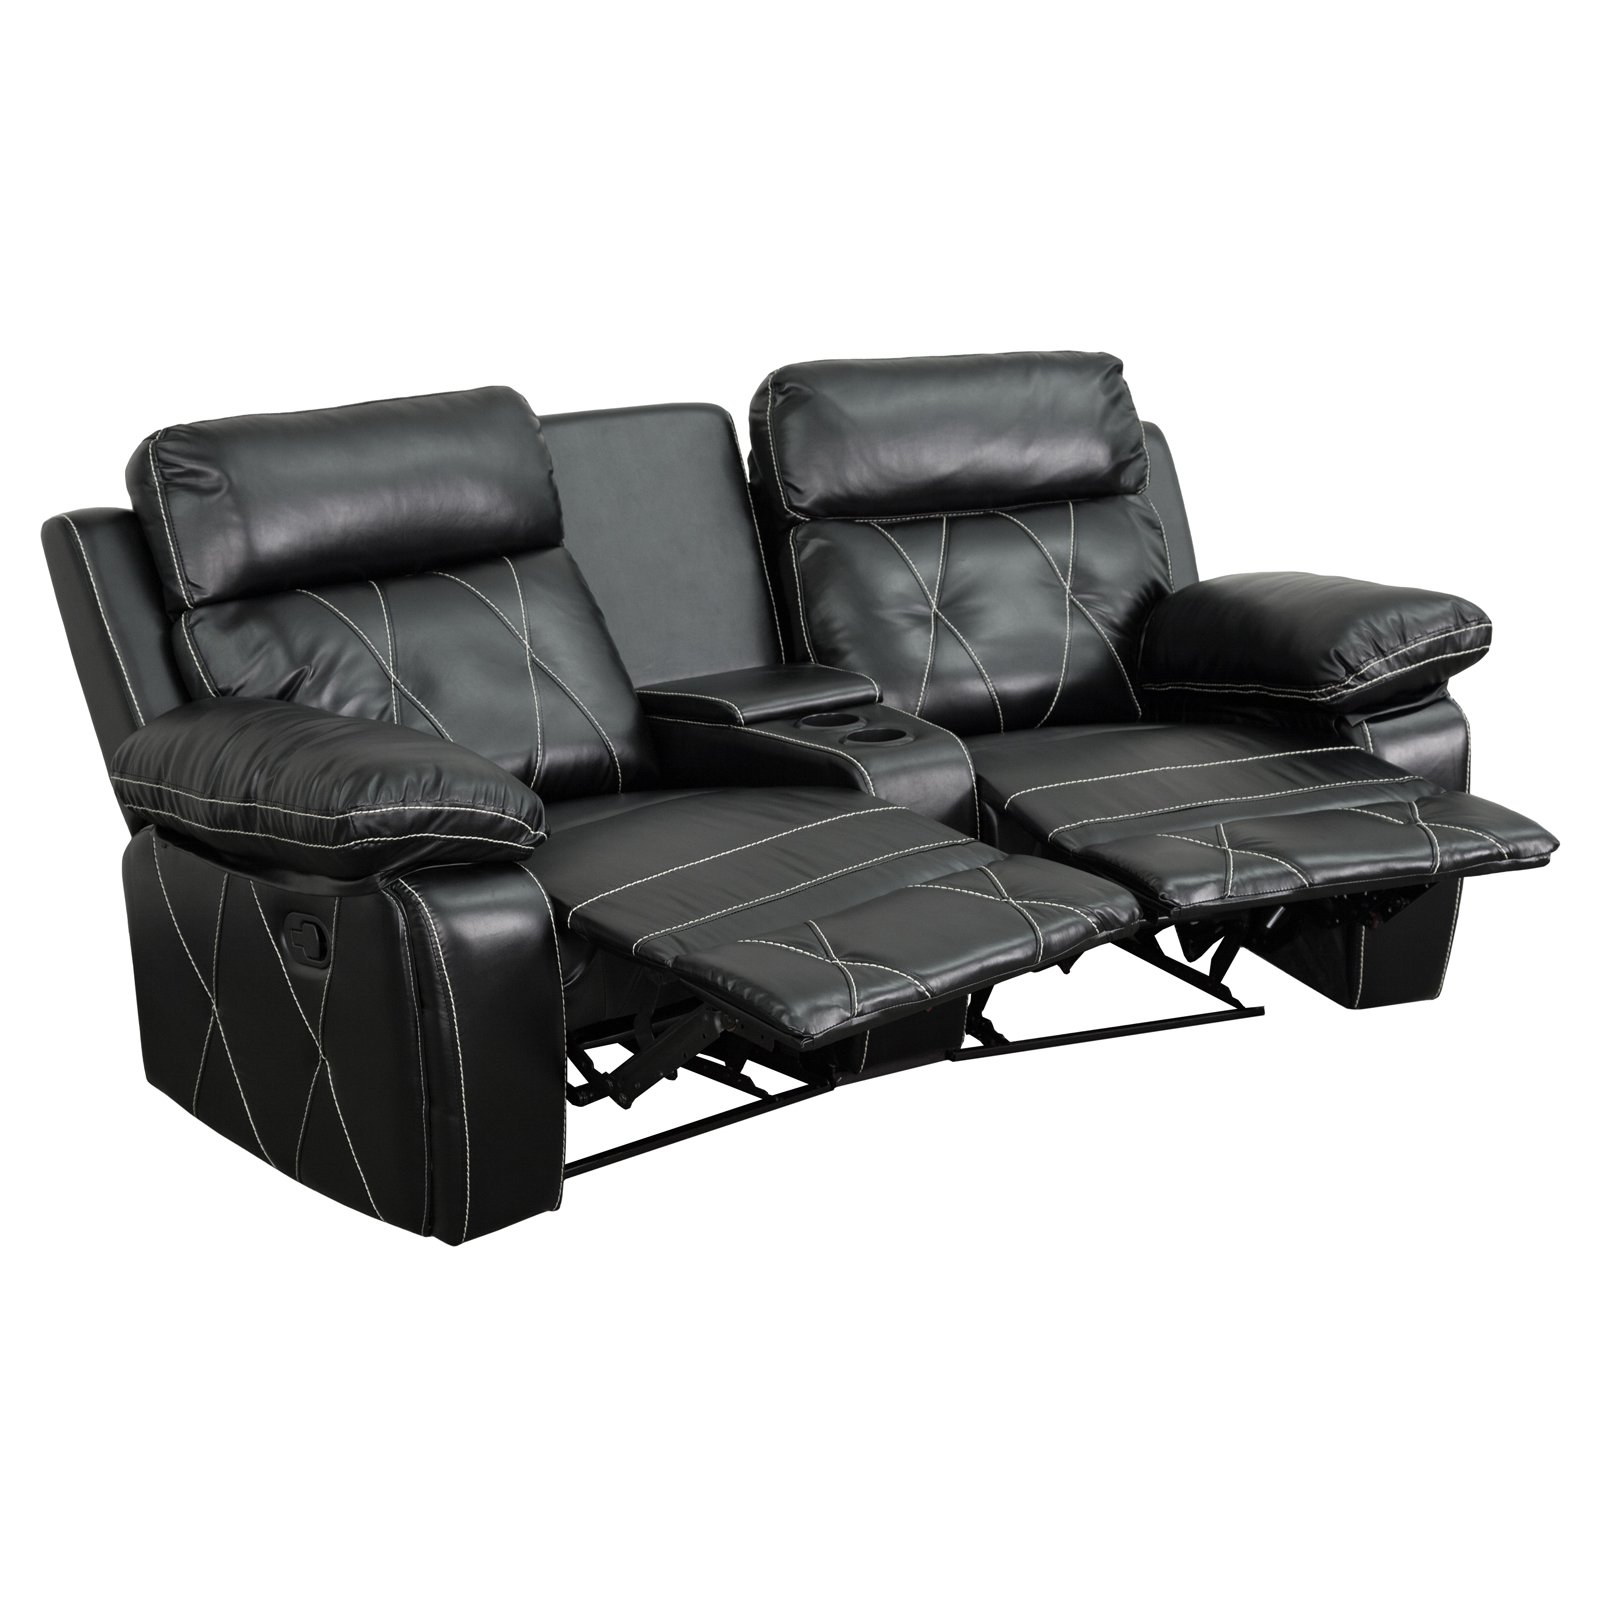 Flash Furniture Reel Comfort Series 2-Seat Reclining  Leather Theater Seating Unit with Curved Cup Holders